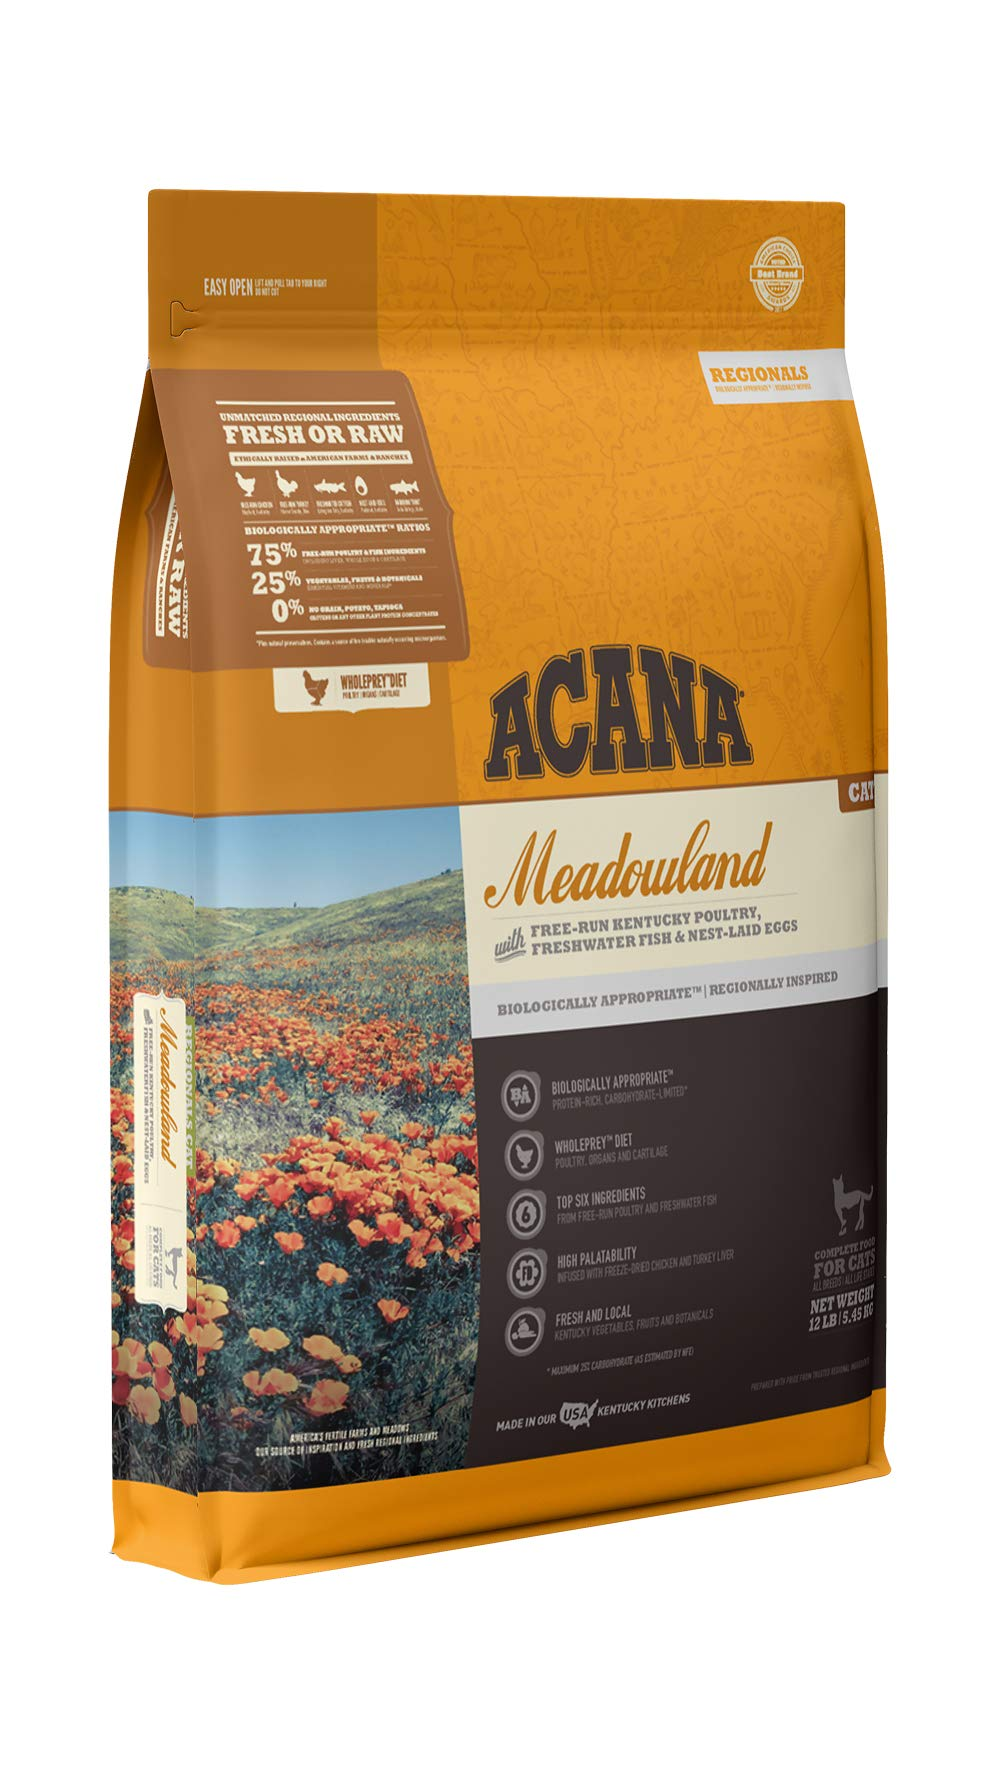 ACANA Regionals Dry Cat Food, Meadowland, Biologically Appropriate & Grain Free by ACANA